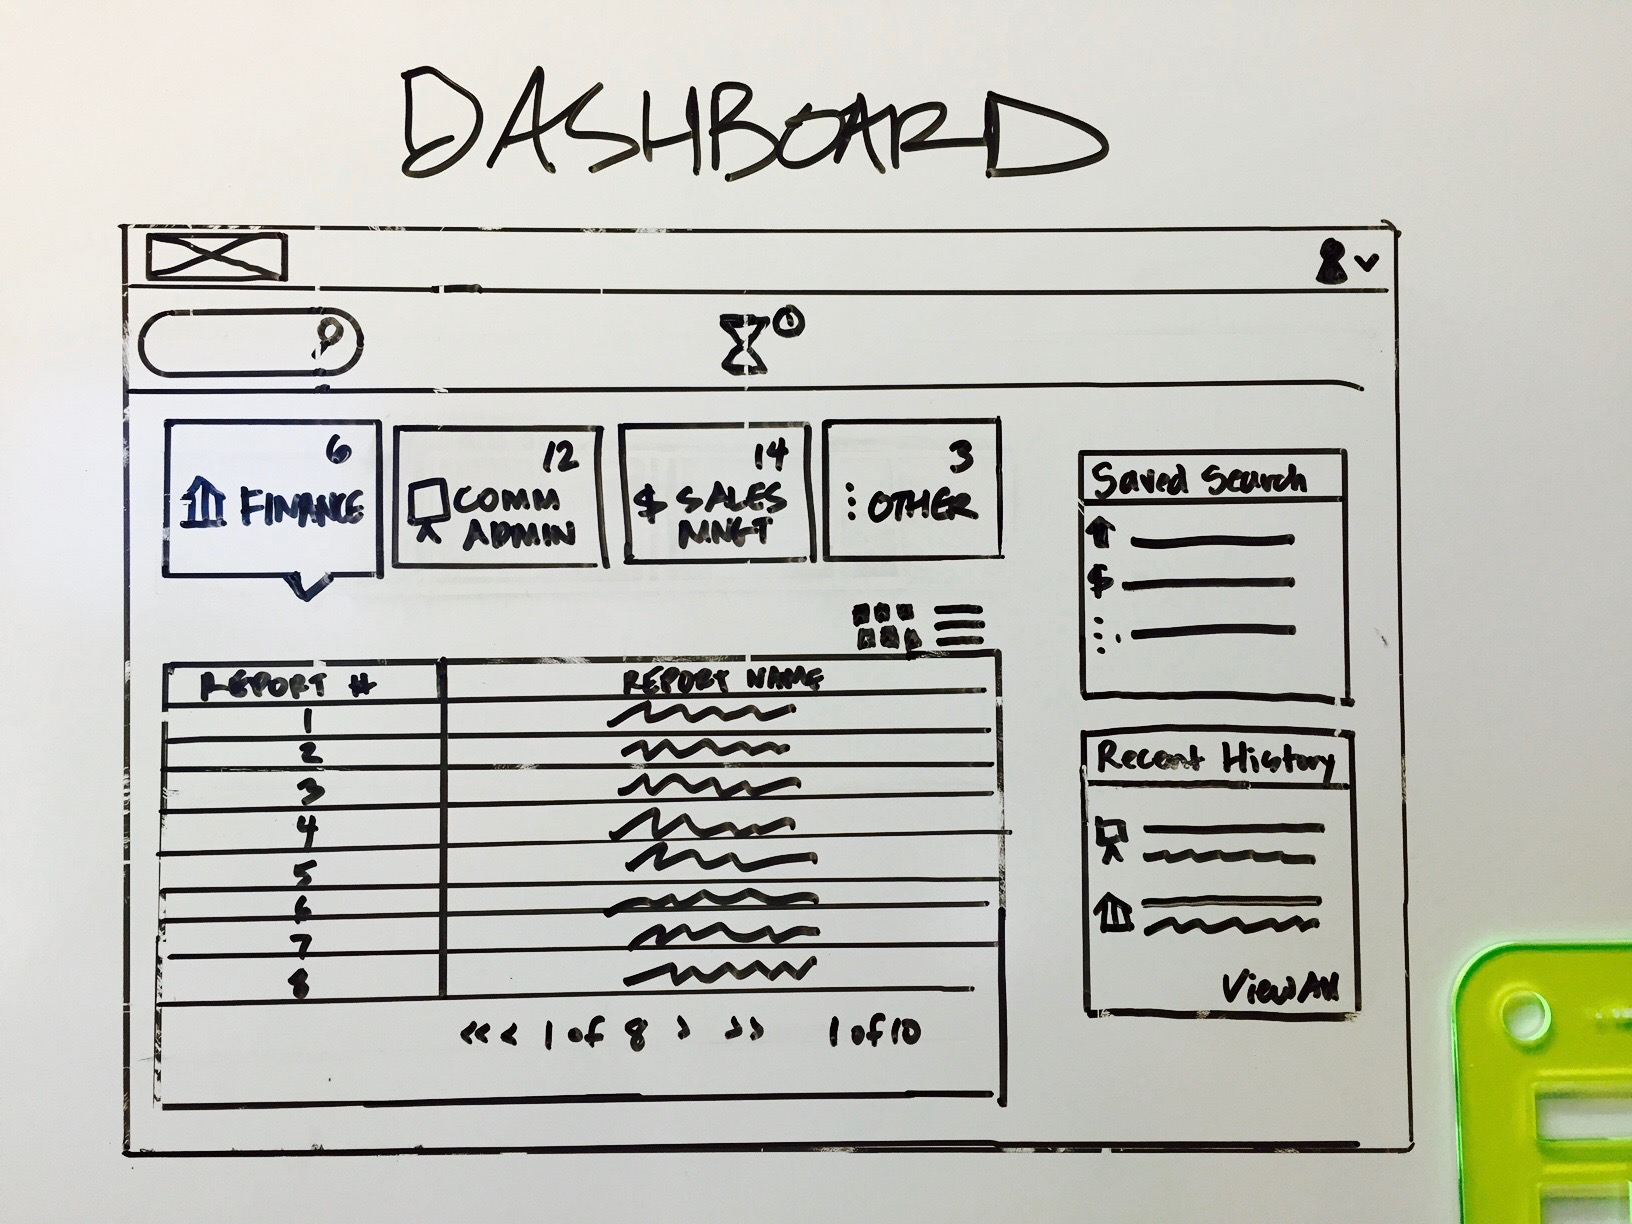 Fox Dashboard Whiteboard wireframe